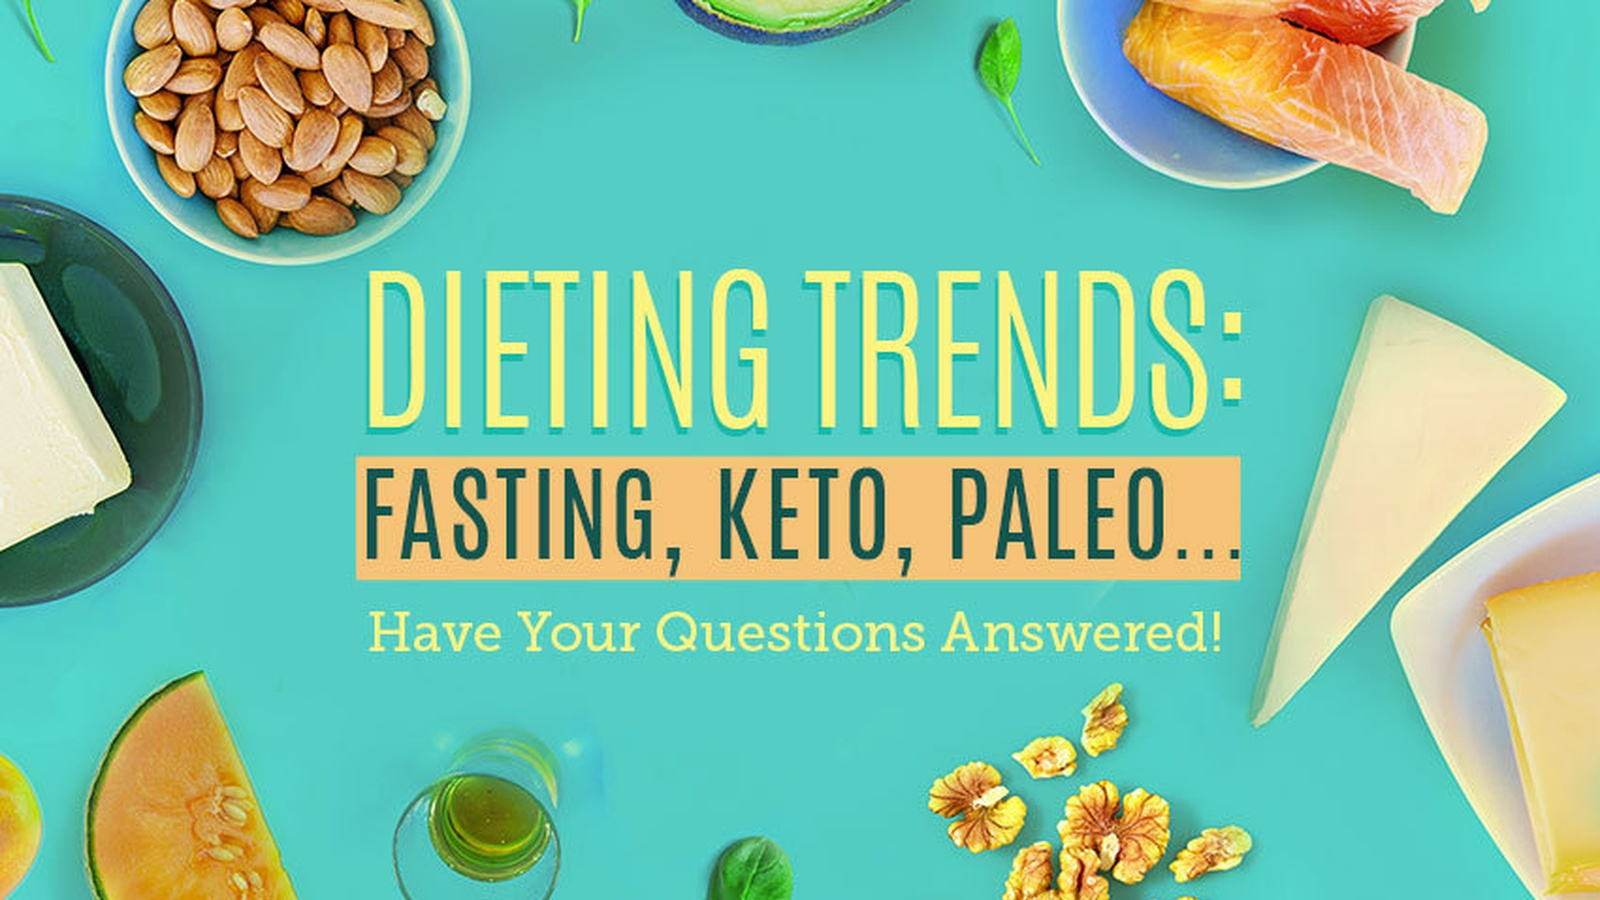 Dieting Trends: Fasting, Keto, Paleo... Have Your Questions Answered!